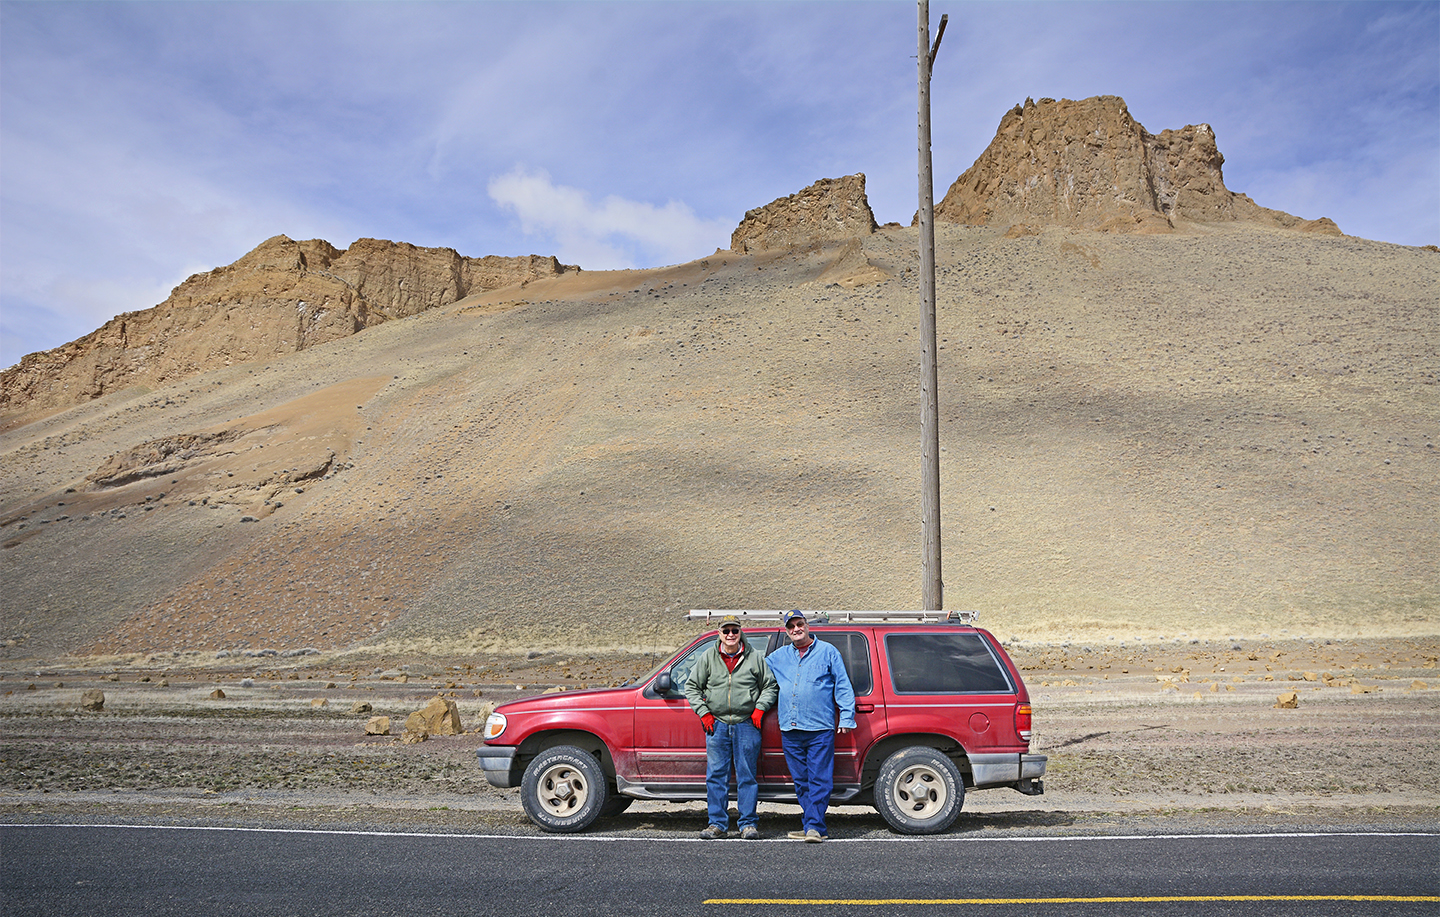 Cy Phillips (left) and friend Dennis Chabot pose in front of his red ford Explorer after checking on kestrel boxes on the eastern side of Tule Lake National Wildlife Refuge. Credit: Jon Myatt/USFWS